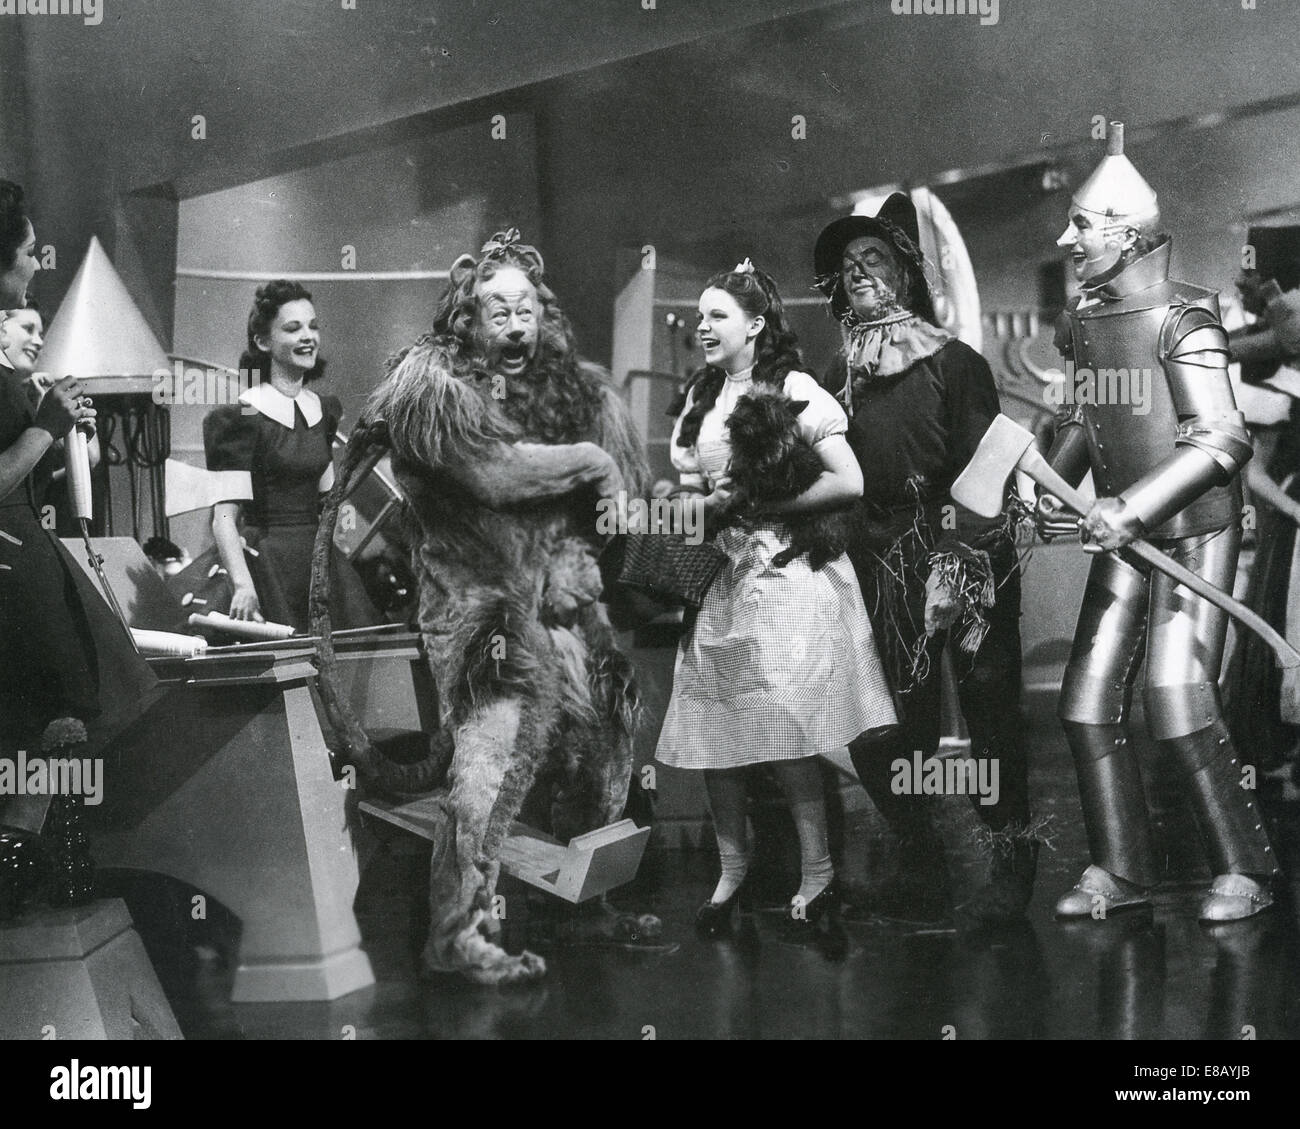 bert lahr gravebert lahr put em up, bert lahr, bert lahr lays commercial, bert lahr movies, bert lahr grave, bert lahr obituary, bert lahr cowardly lion costume, bert lahr wizard of oz, bert lahr son, bert lahr gay, bert lahr imdb, bert lahr waiting for godot, bert lahr quotes, bert lahr interview, bert lahr net worth, bert lahr autograph, bert lahr lays potato chips, bert lahr family tree, bert lahr andy griffith show